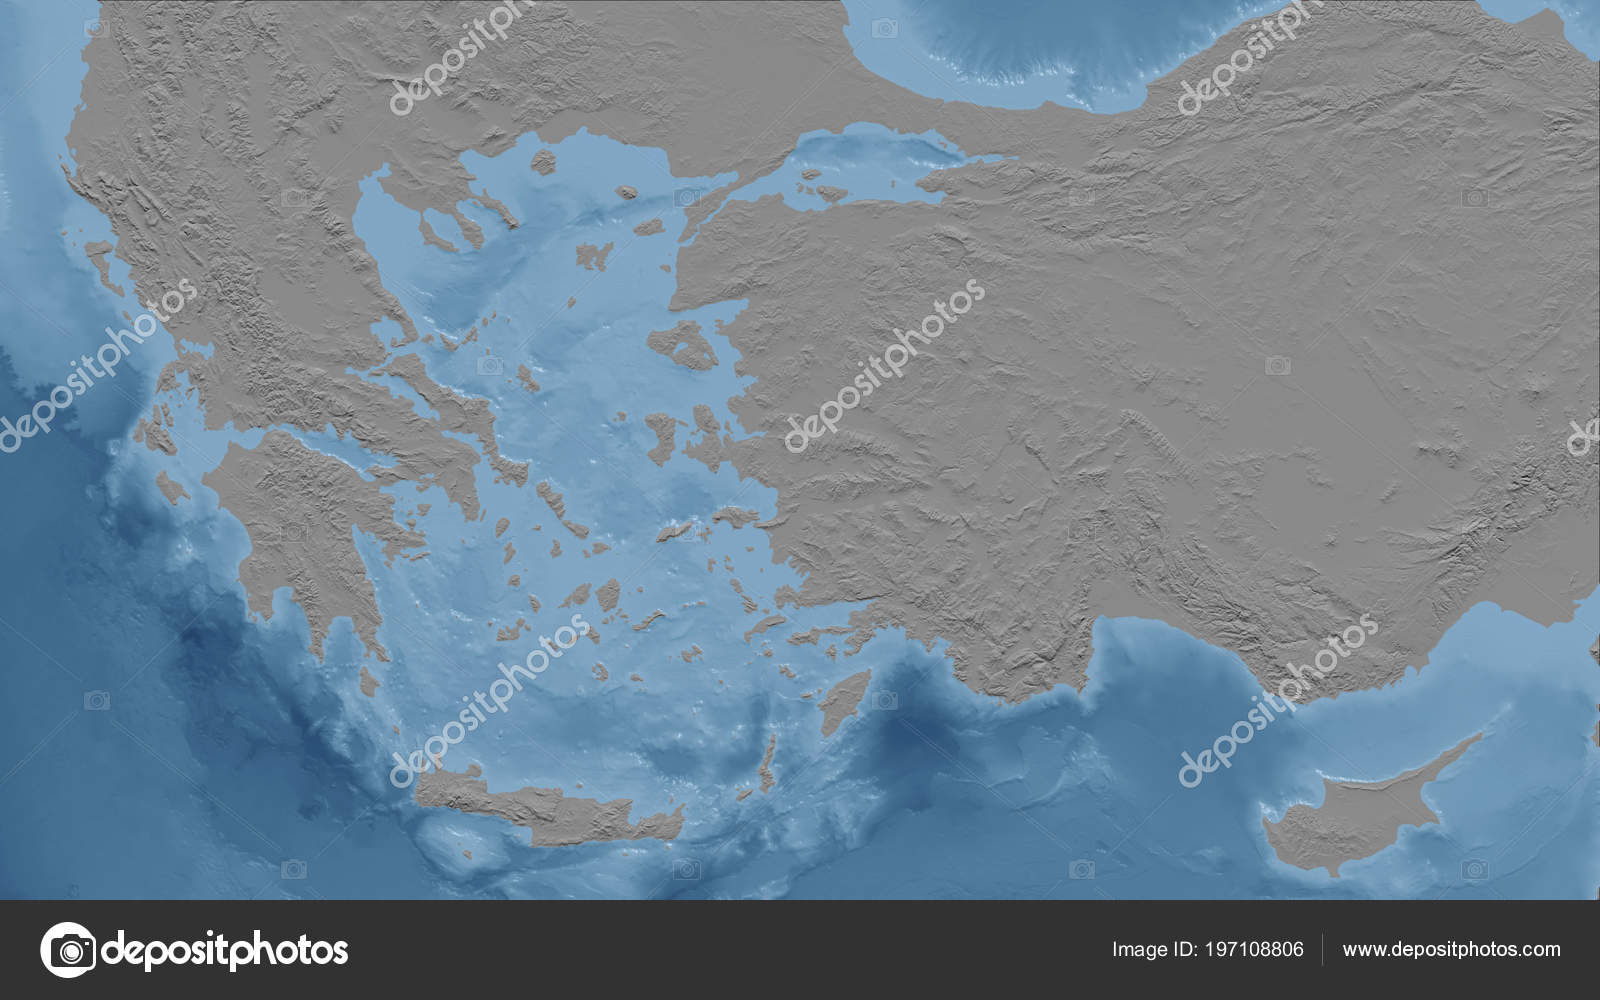 Greece Close Perspective Country Outline Bilevel Elevation Map